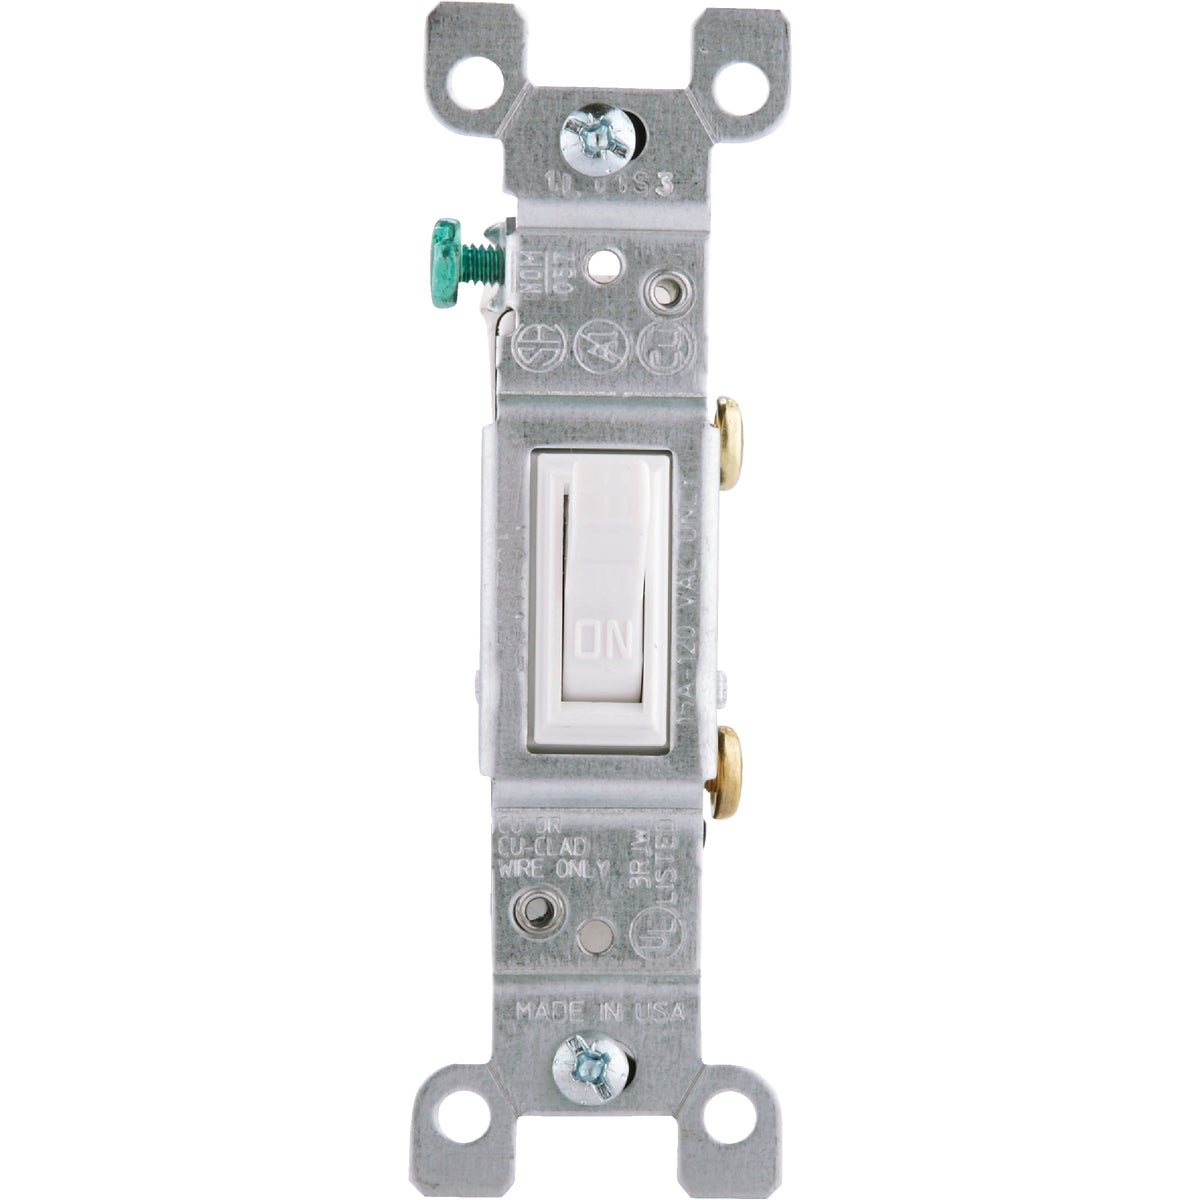 WHT 1POLE GRND SWITCH - 1451-2WCP by Leviton Mfg Co